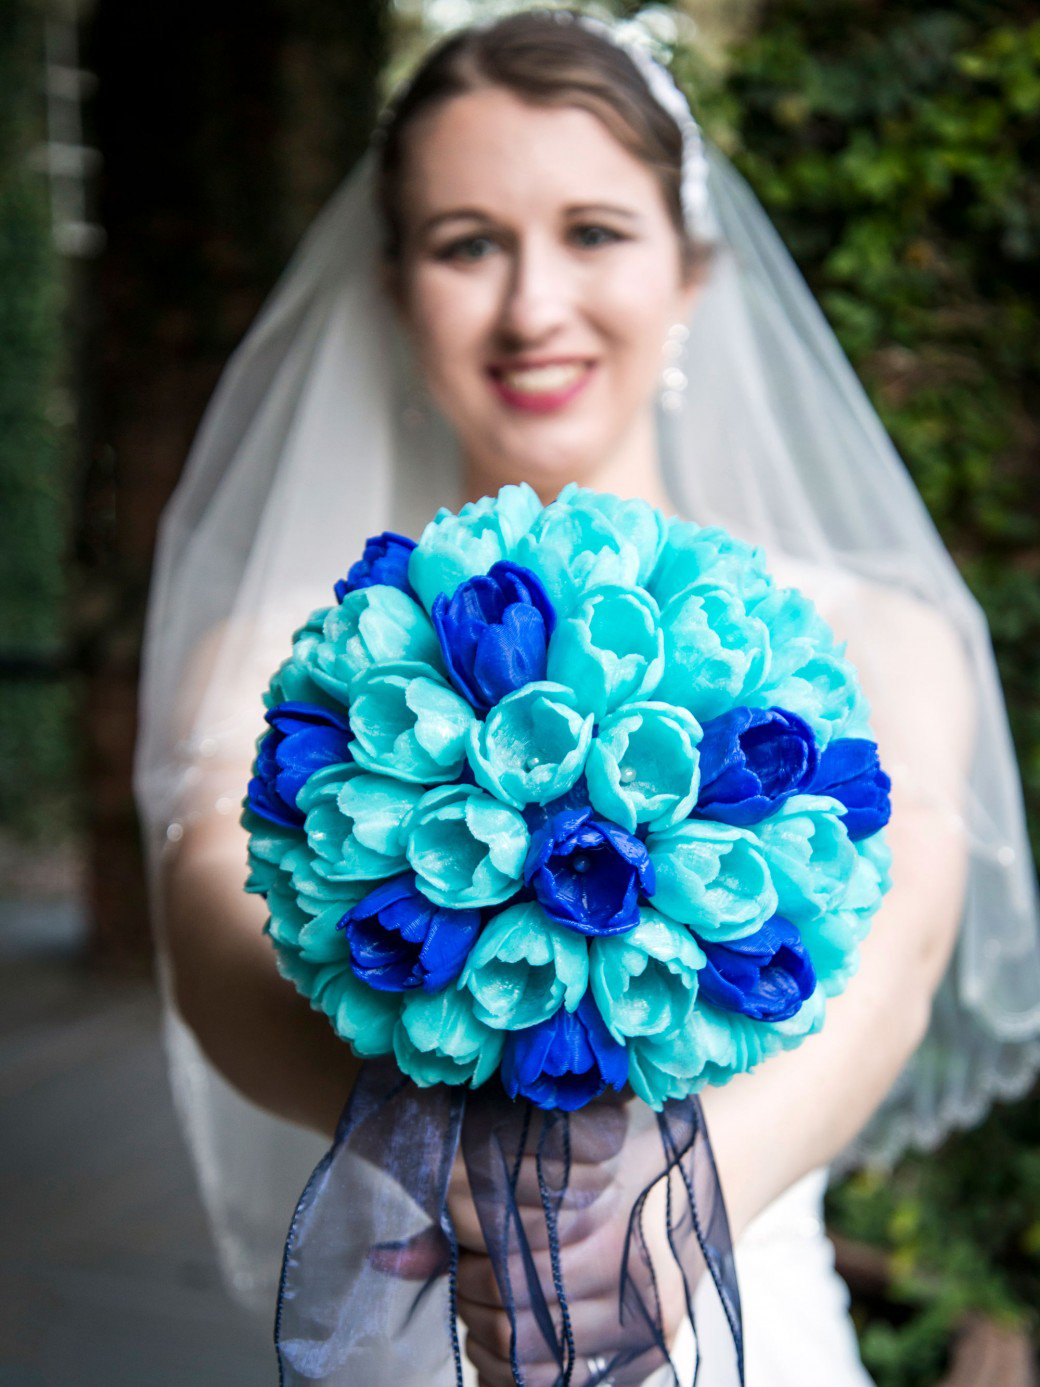 Erin Winick's 3D printed wedding bouquet. Photo courtesy of Mark Pariani